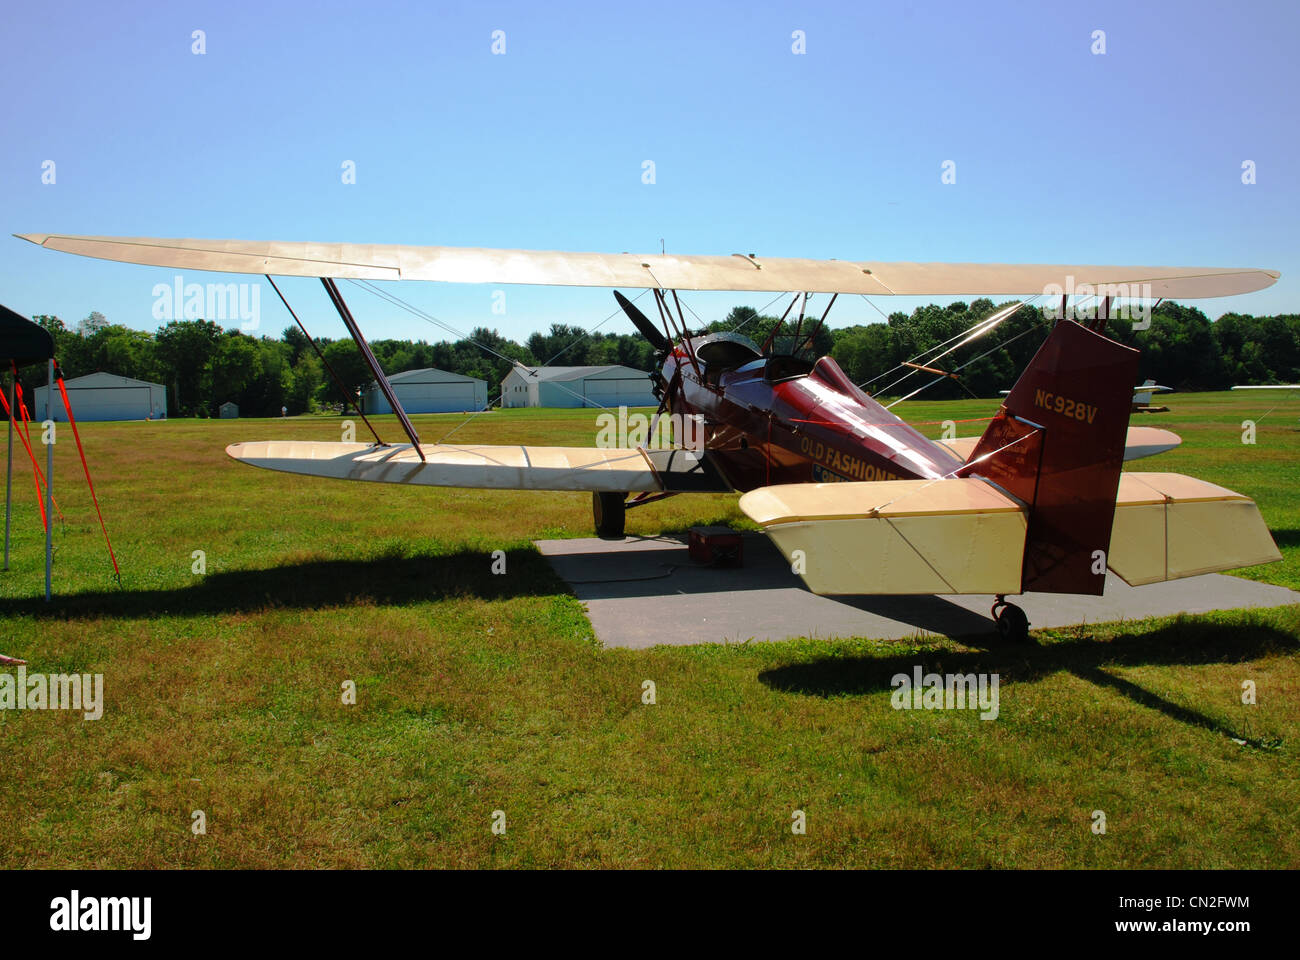 Biplane at an old fashioned airfield - Stock Image